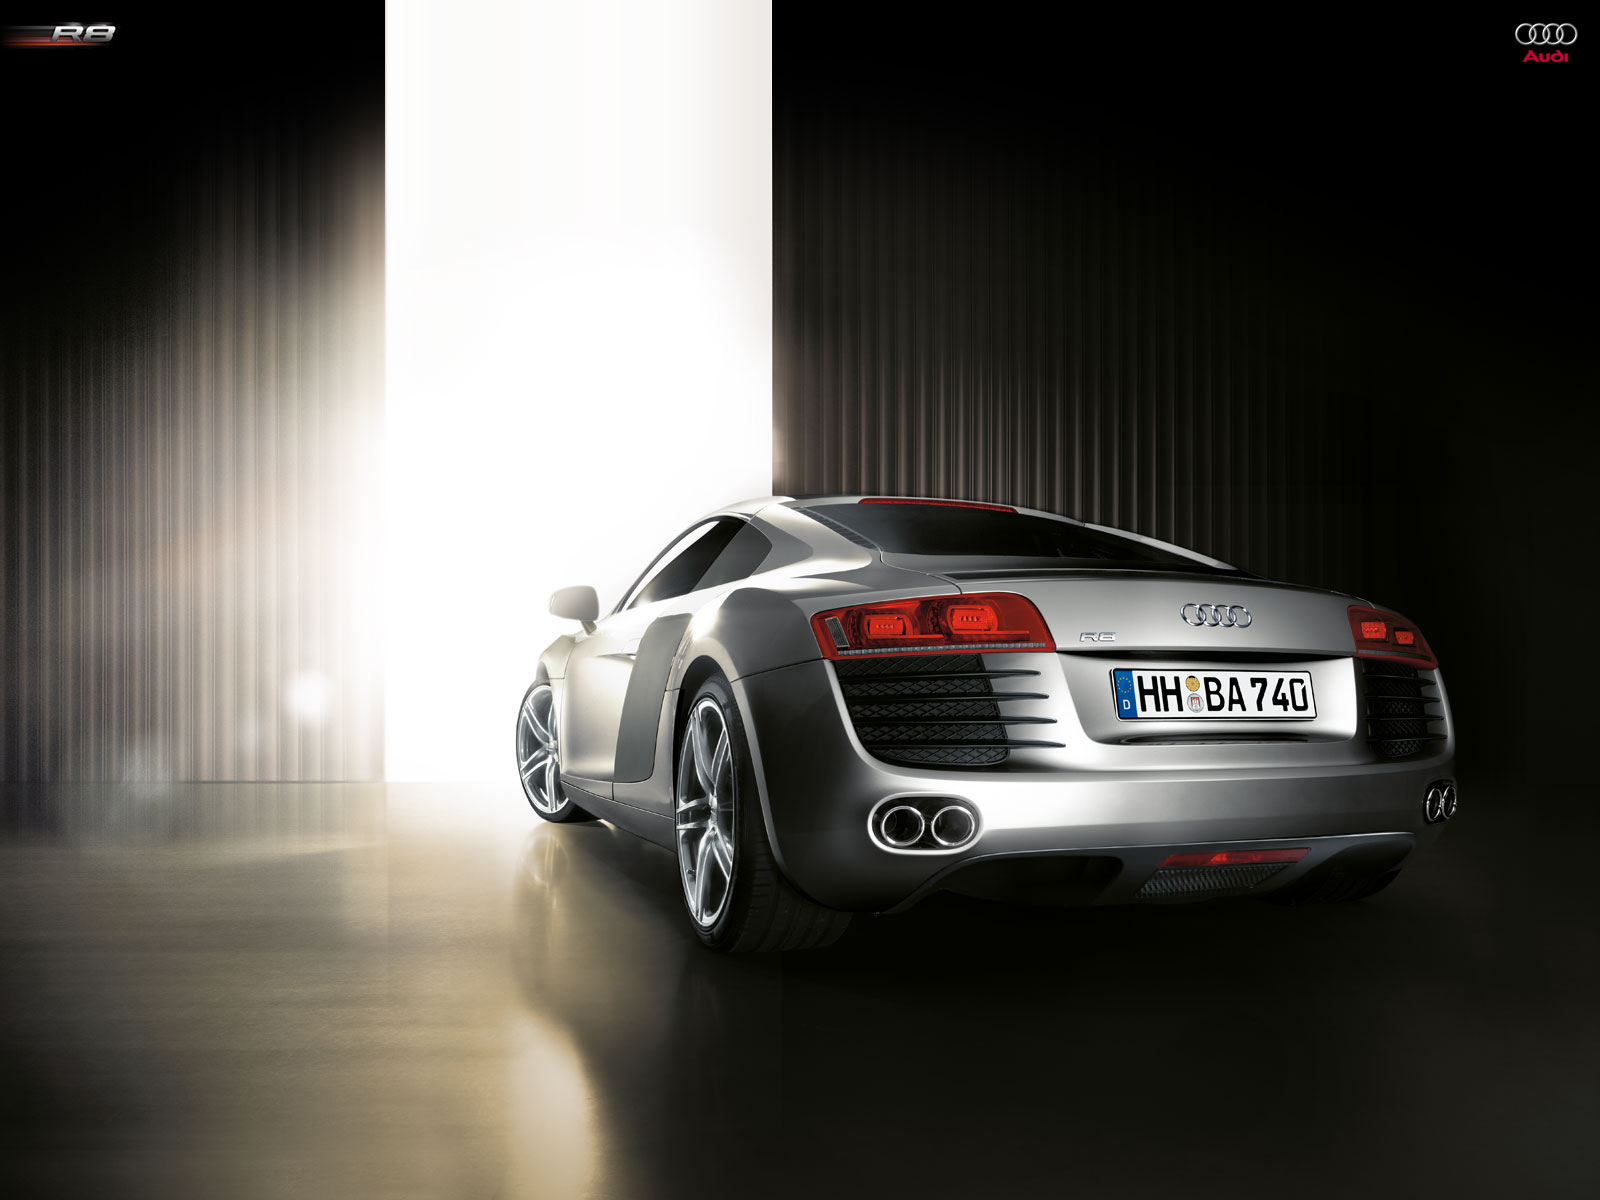 full wallpaper fond d 39 ecran voitures audi r8 image et. Black Bedroom Furniture Sets. Home Design Ideas